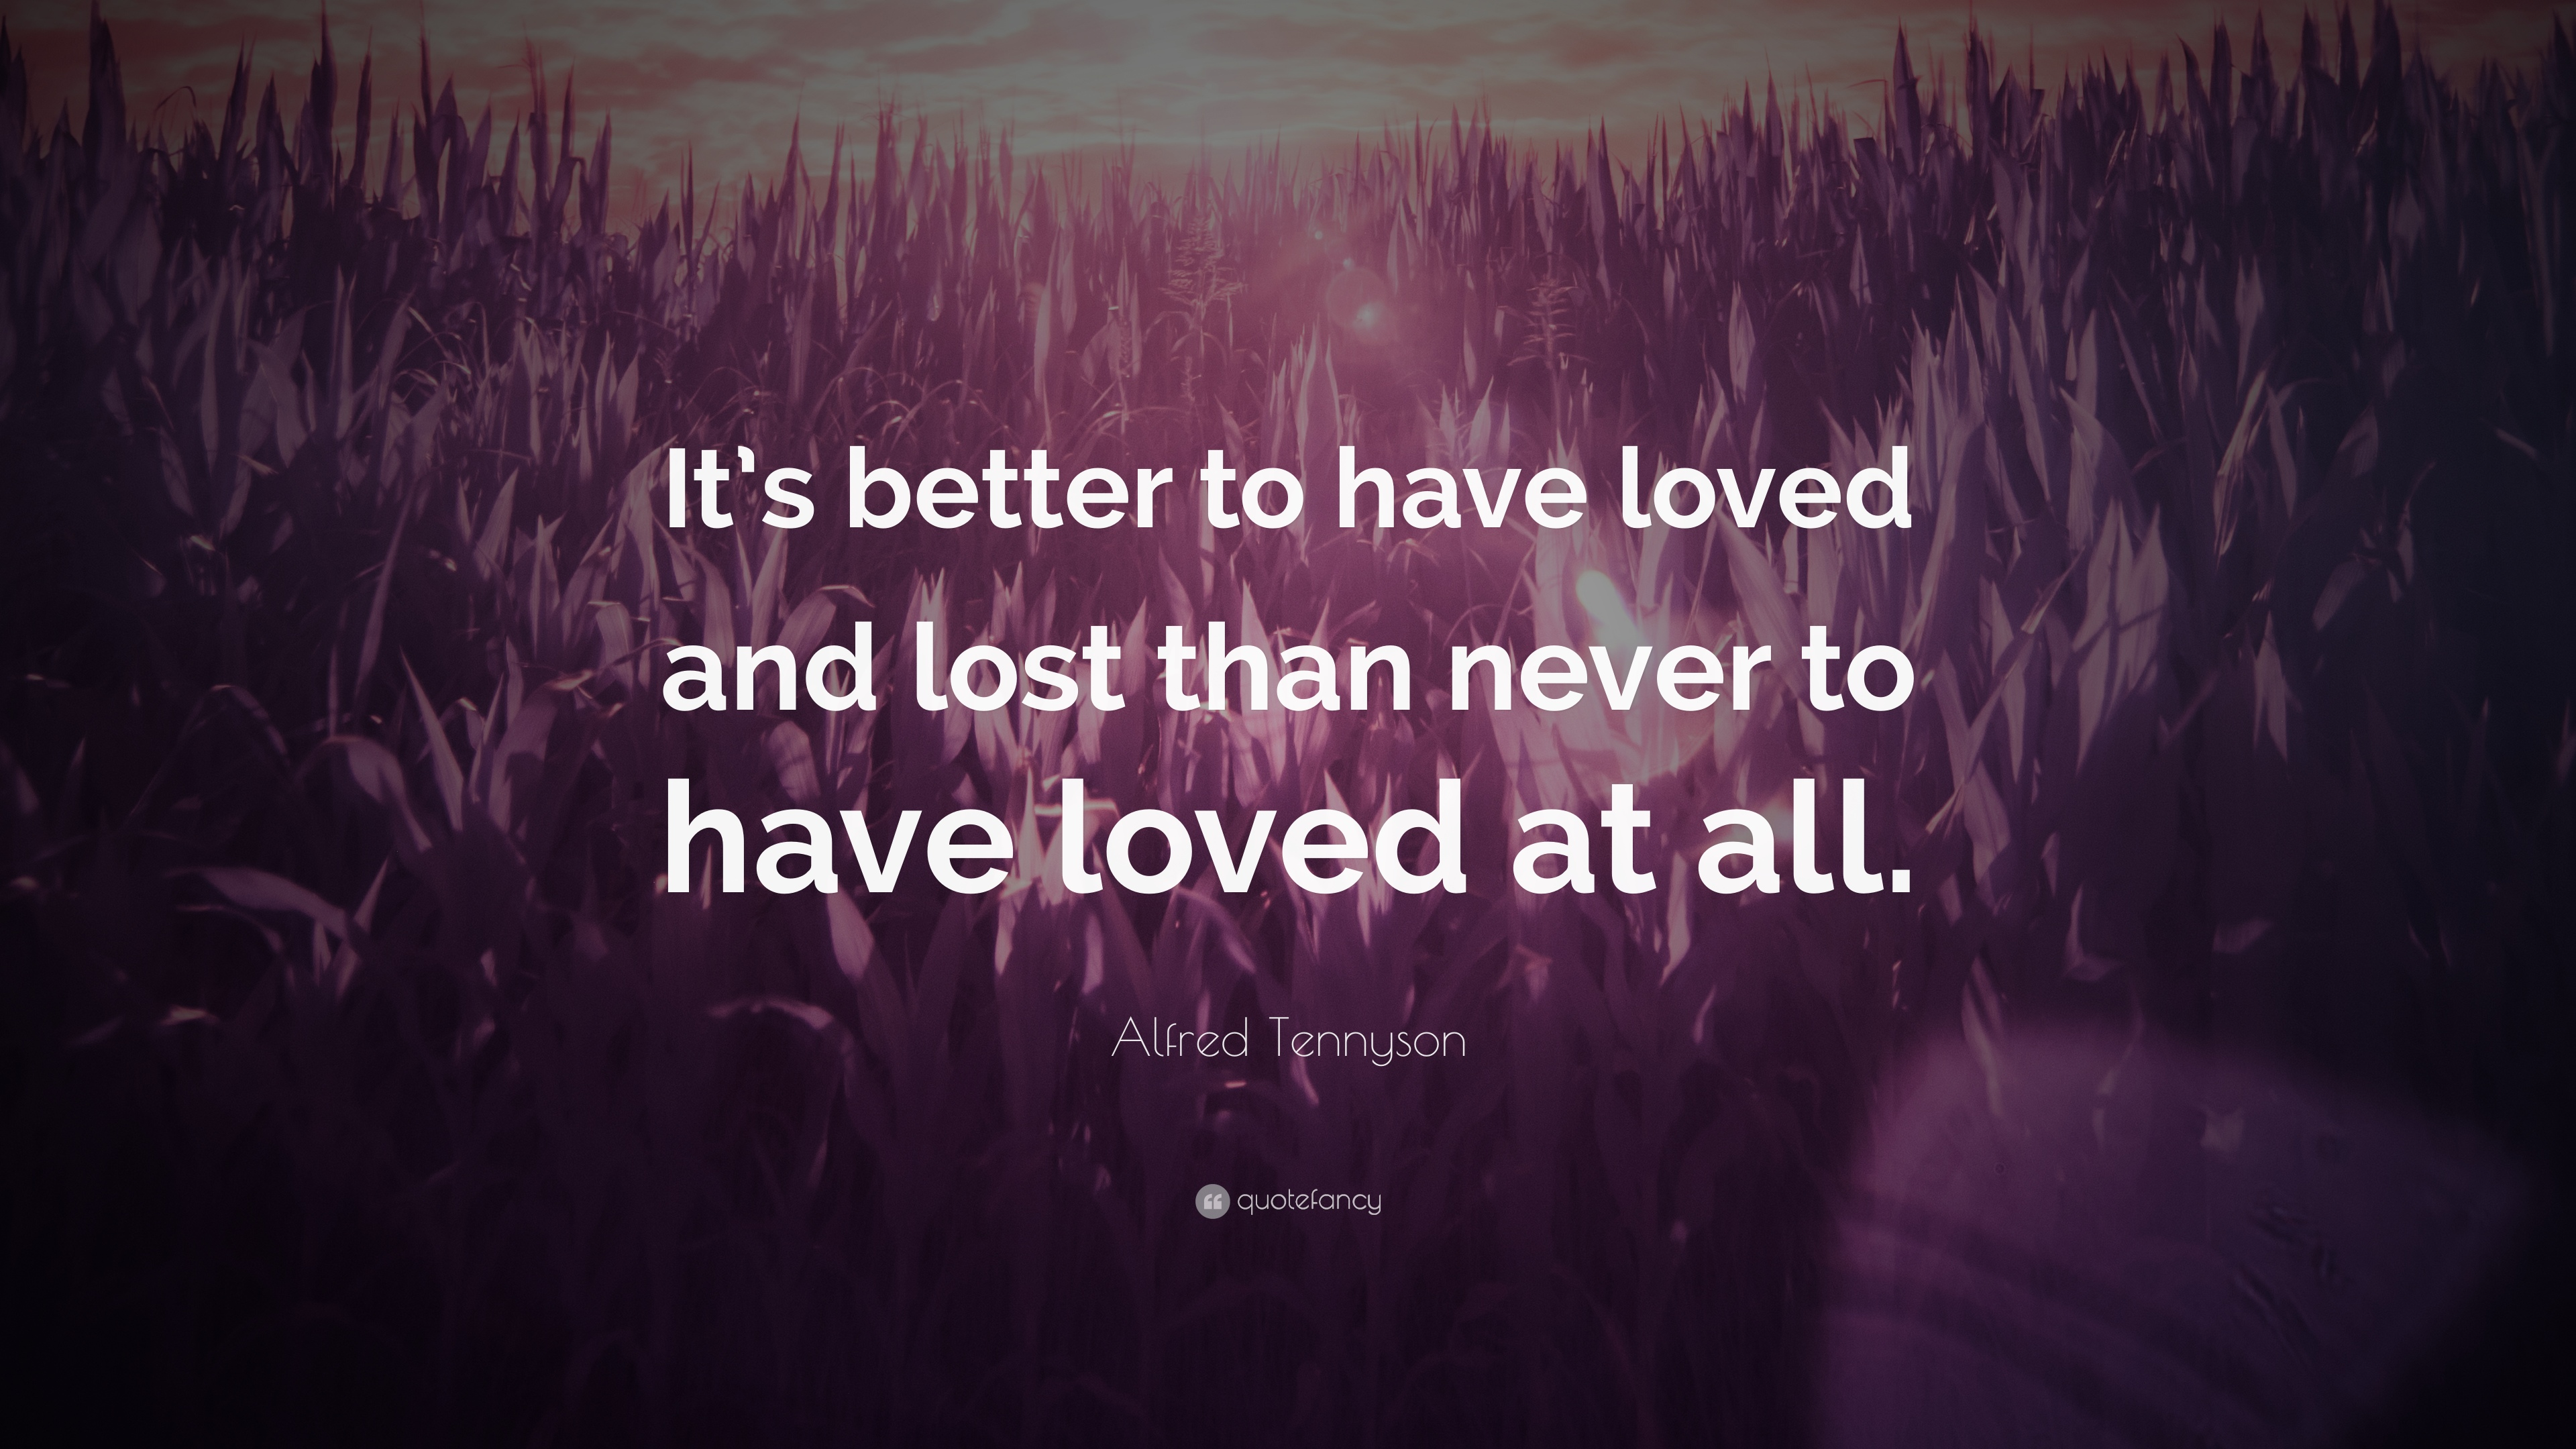 Short Quotes About Death Of A Loved One Love Quotes 26 Wallpapers  Quotefancy